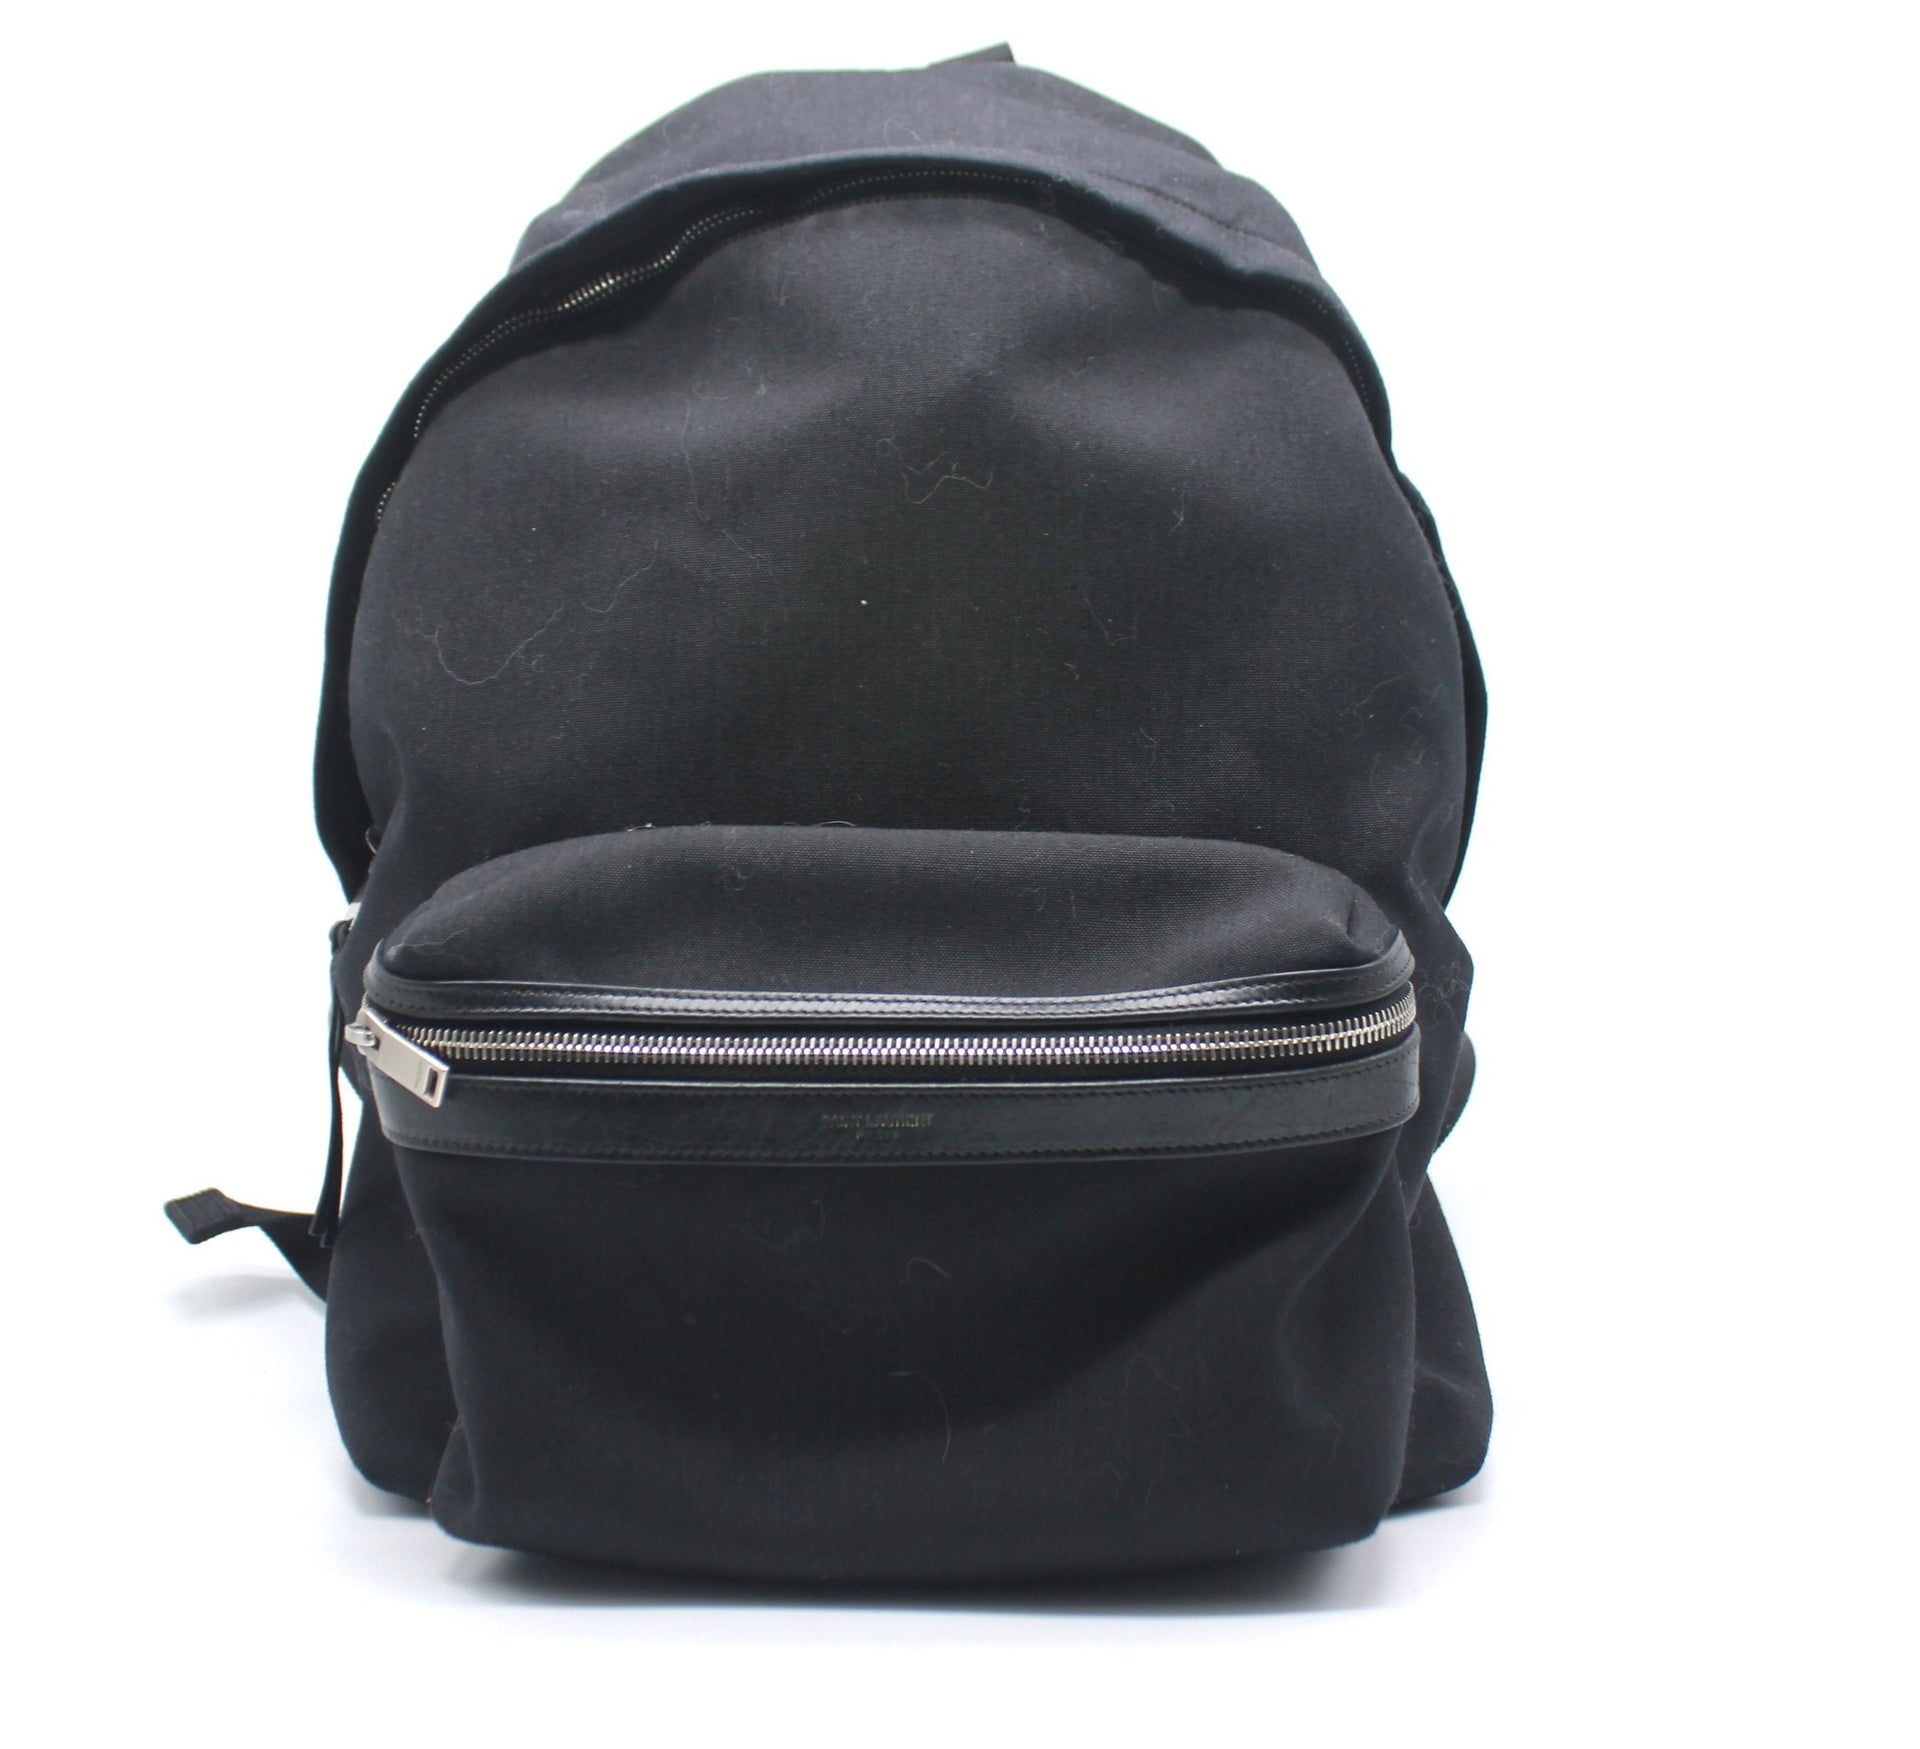 4a5594533f5547 Saint Laurent City Backpack in Black Nylon Canvas and Leather ...